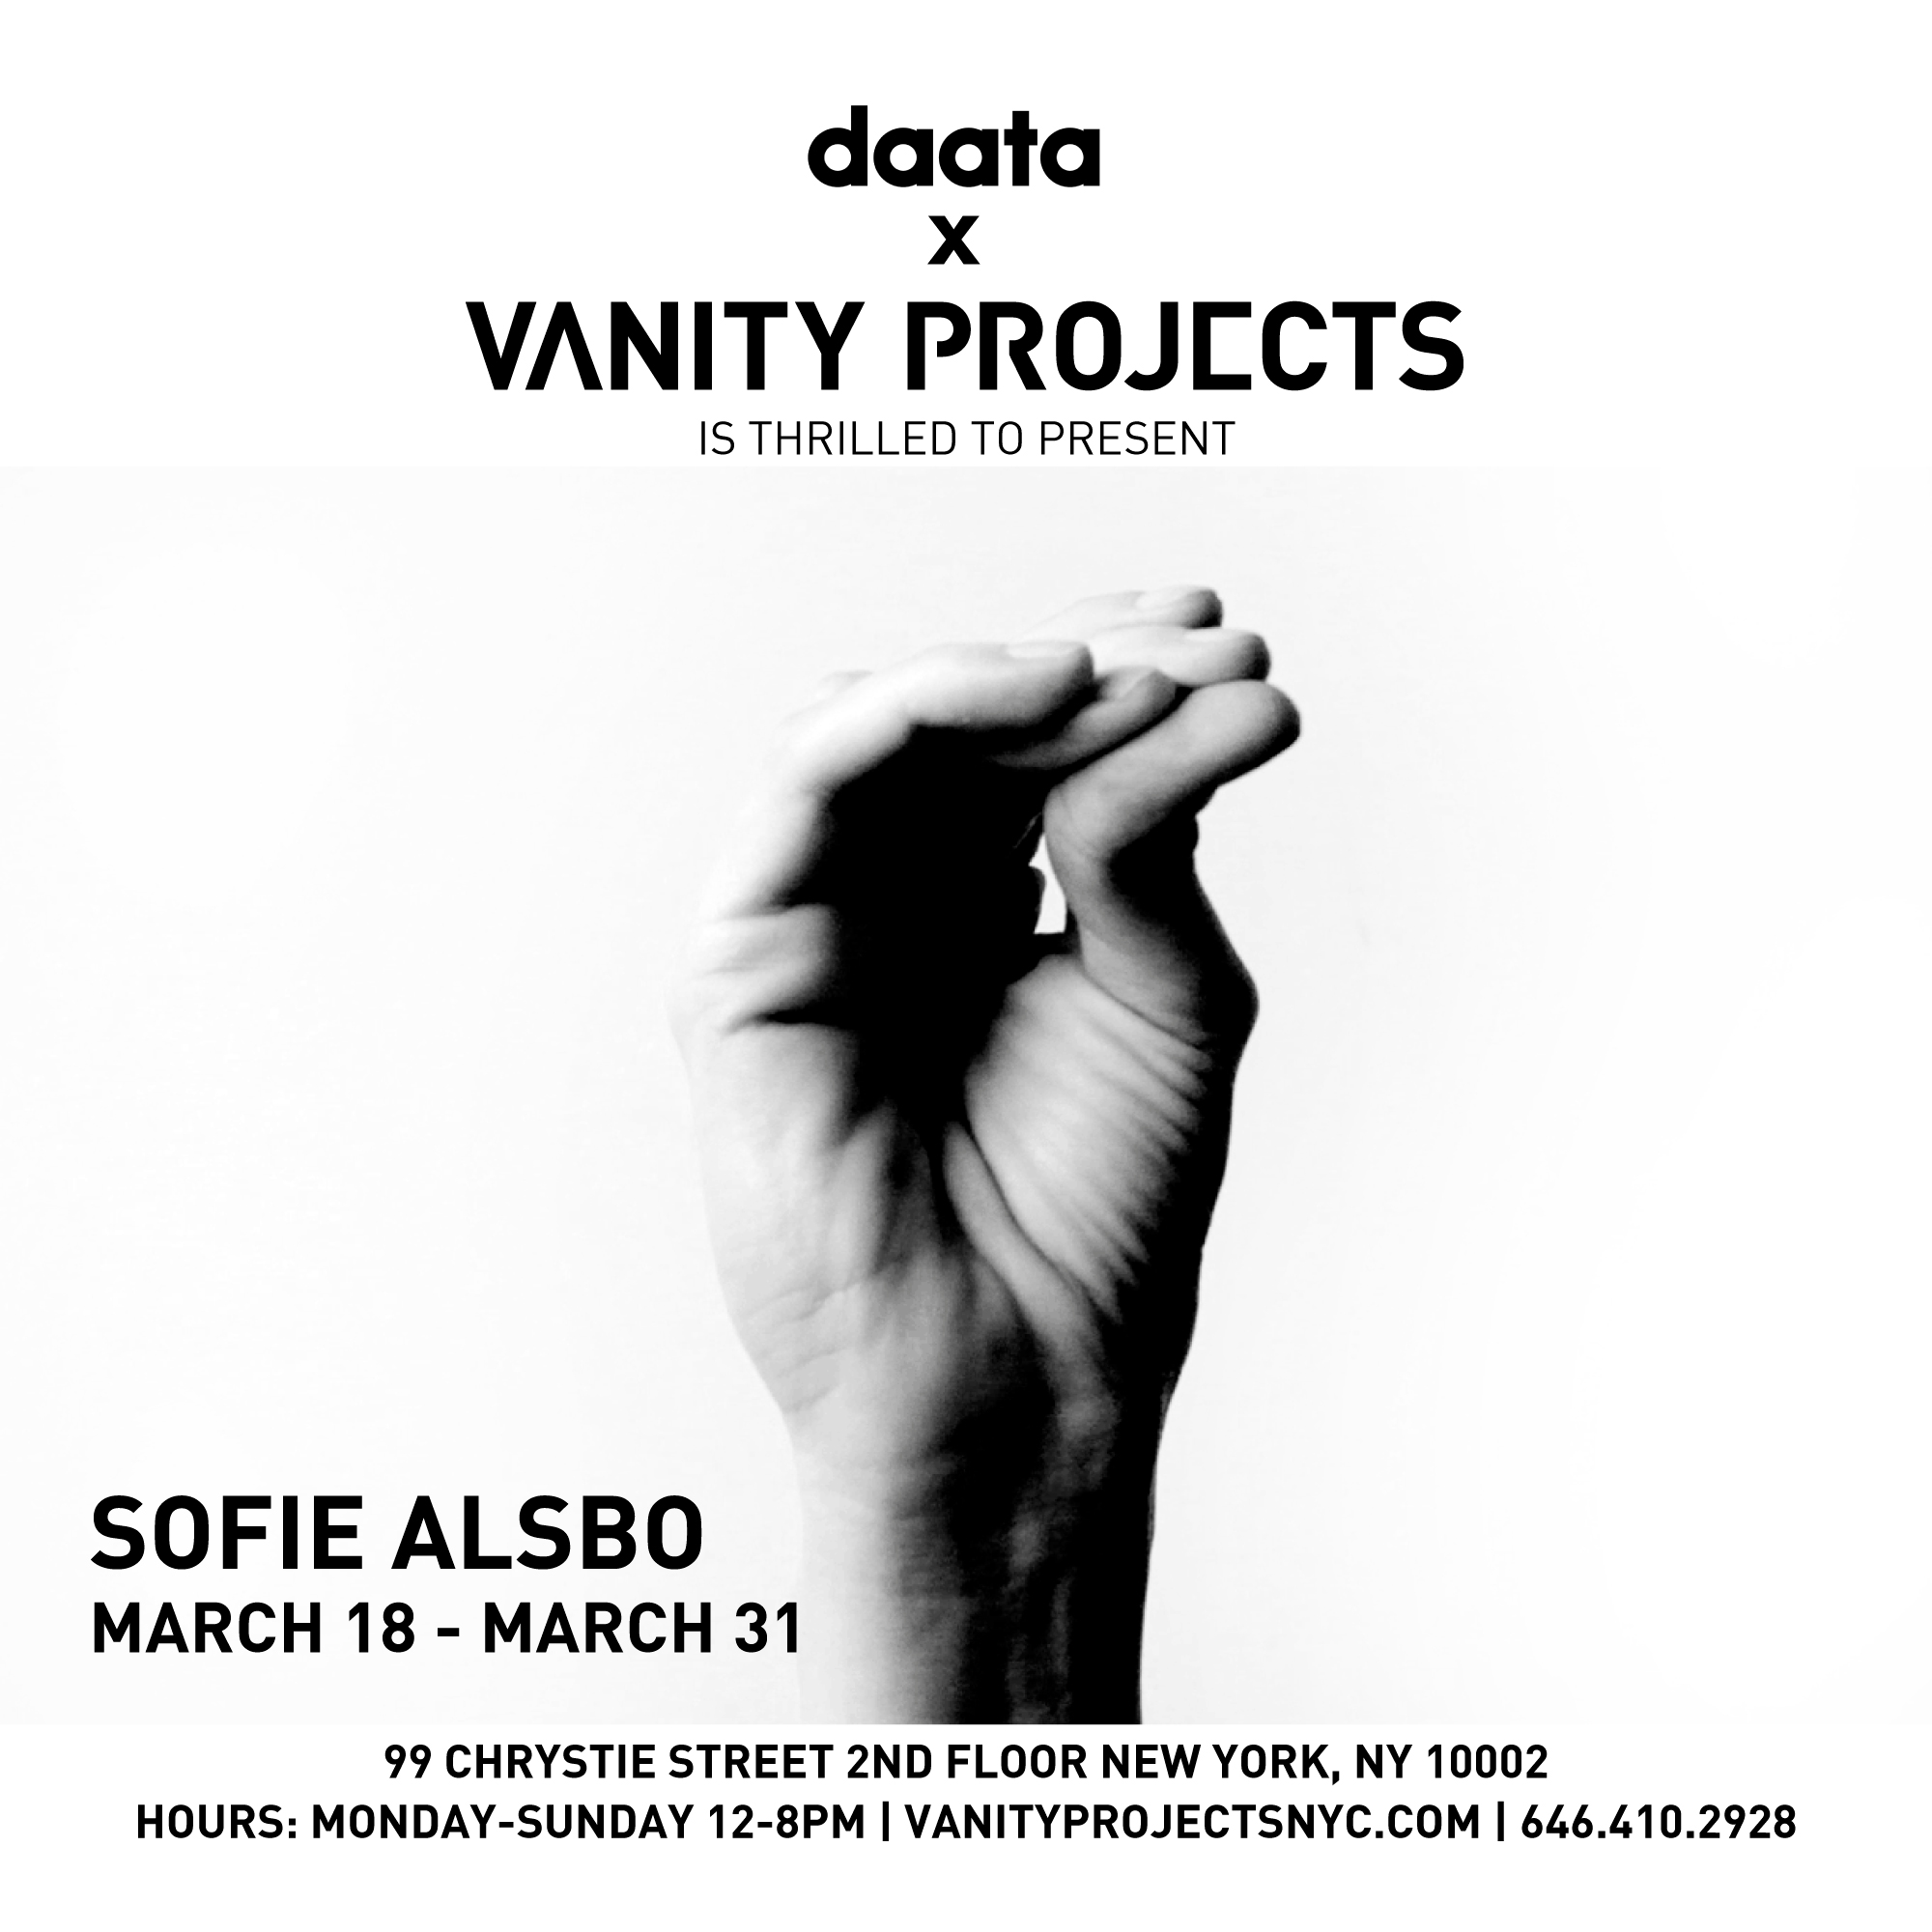 vp_announcements_daata_Sofie_Alsbo_nyc.jpg